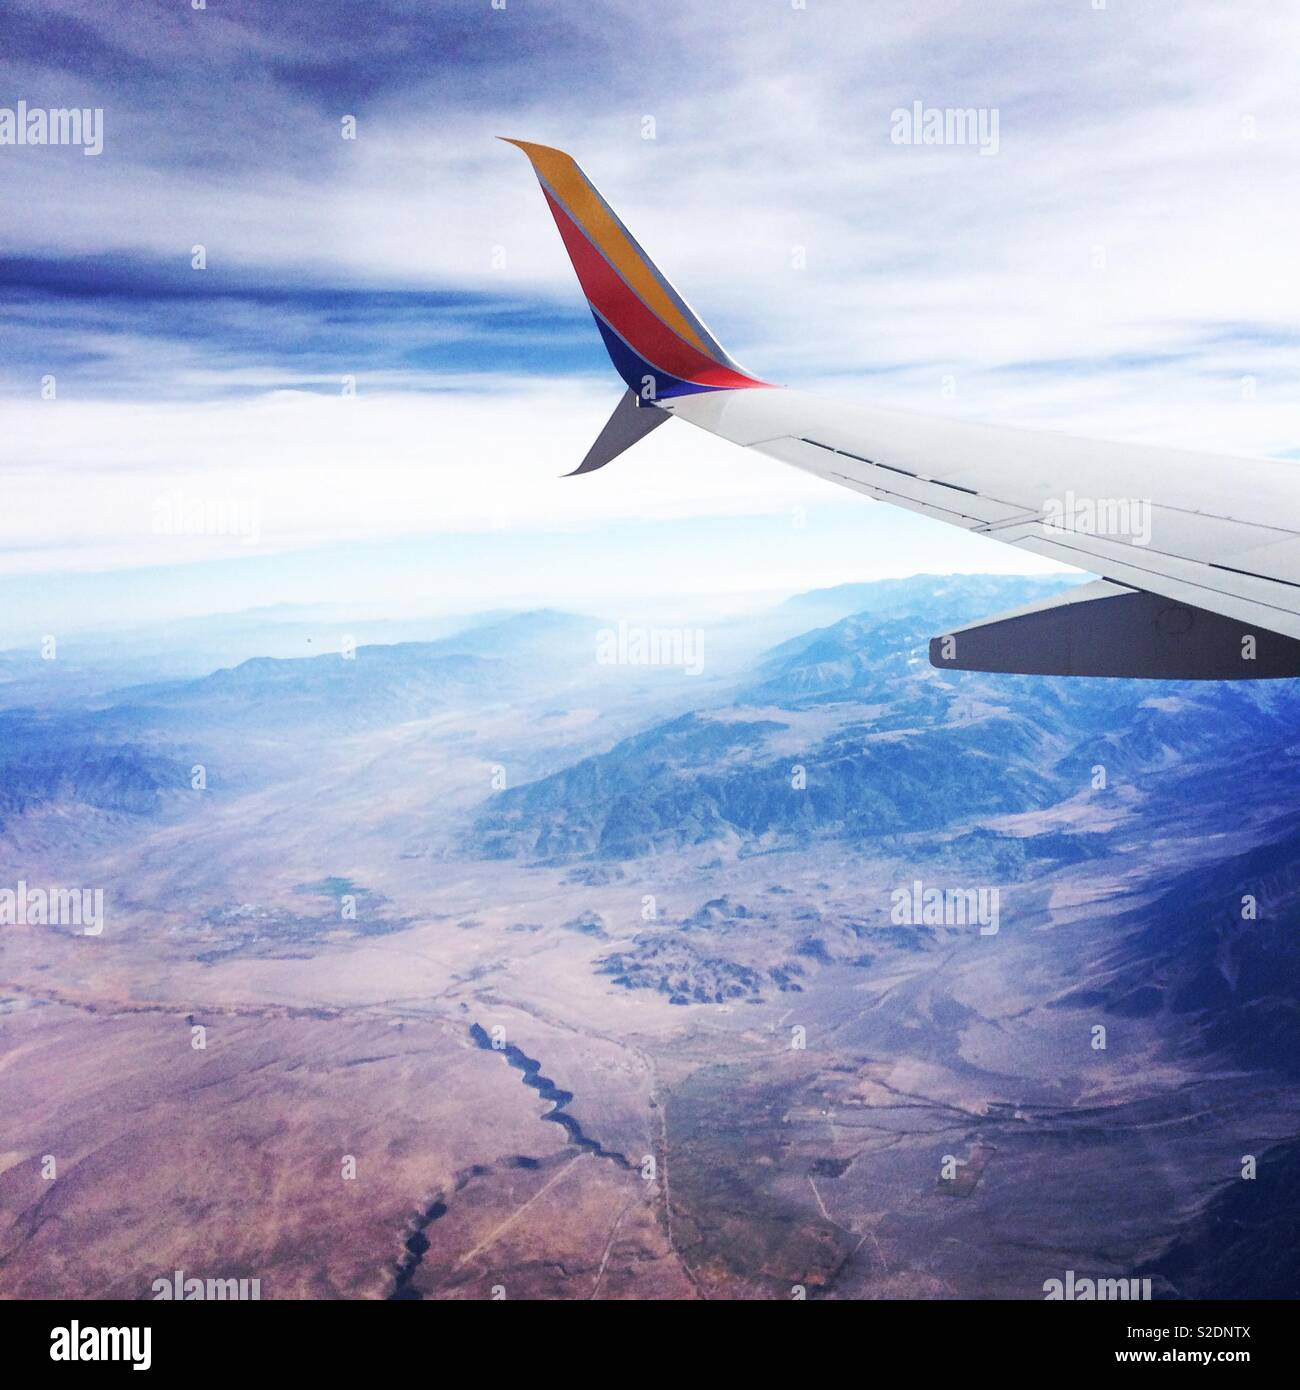 Southwest Air wing seen while flying over desert landscape in the Western United States - Stock Image